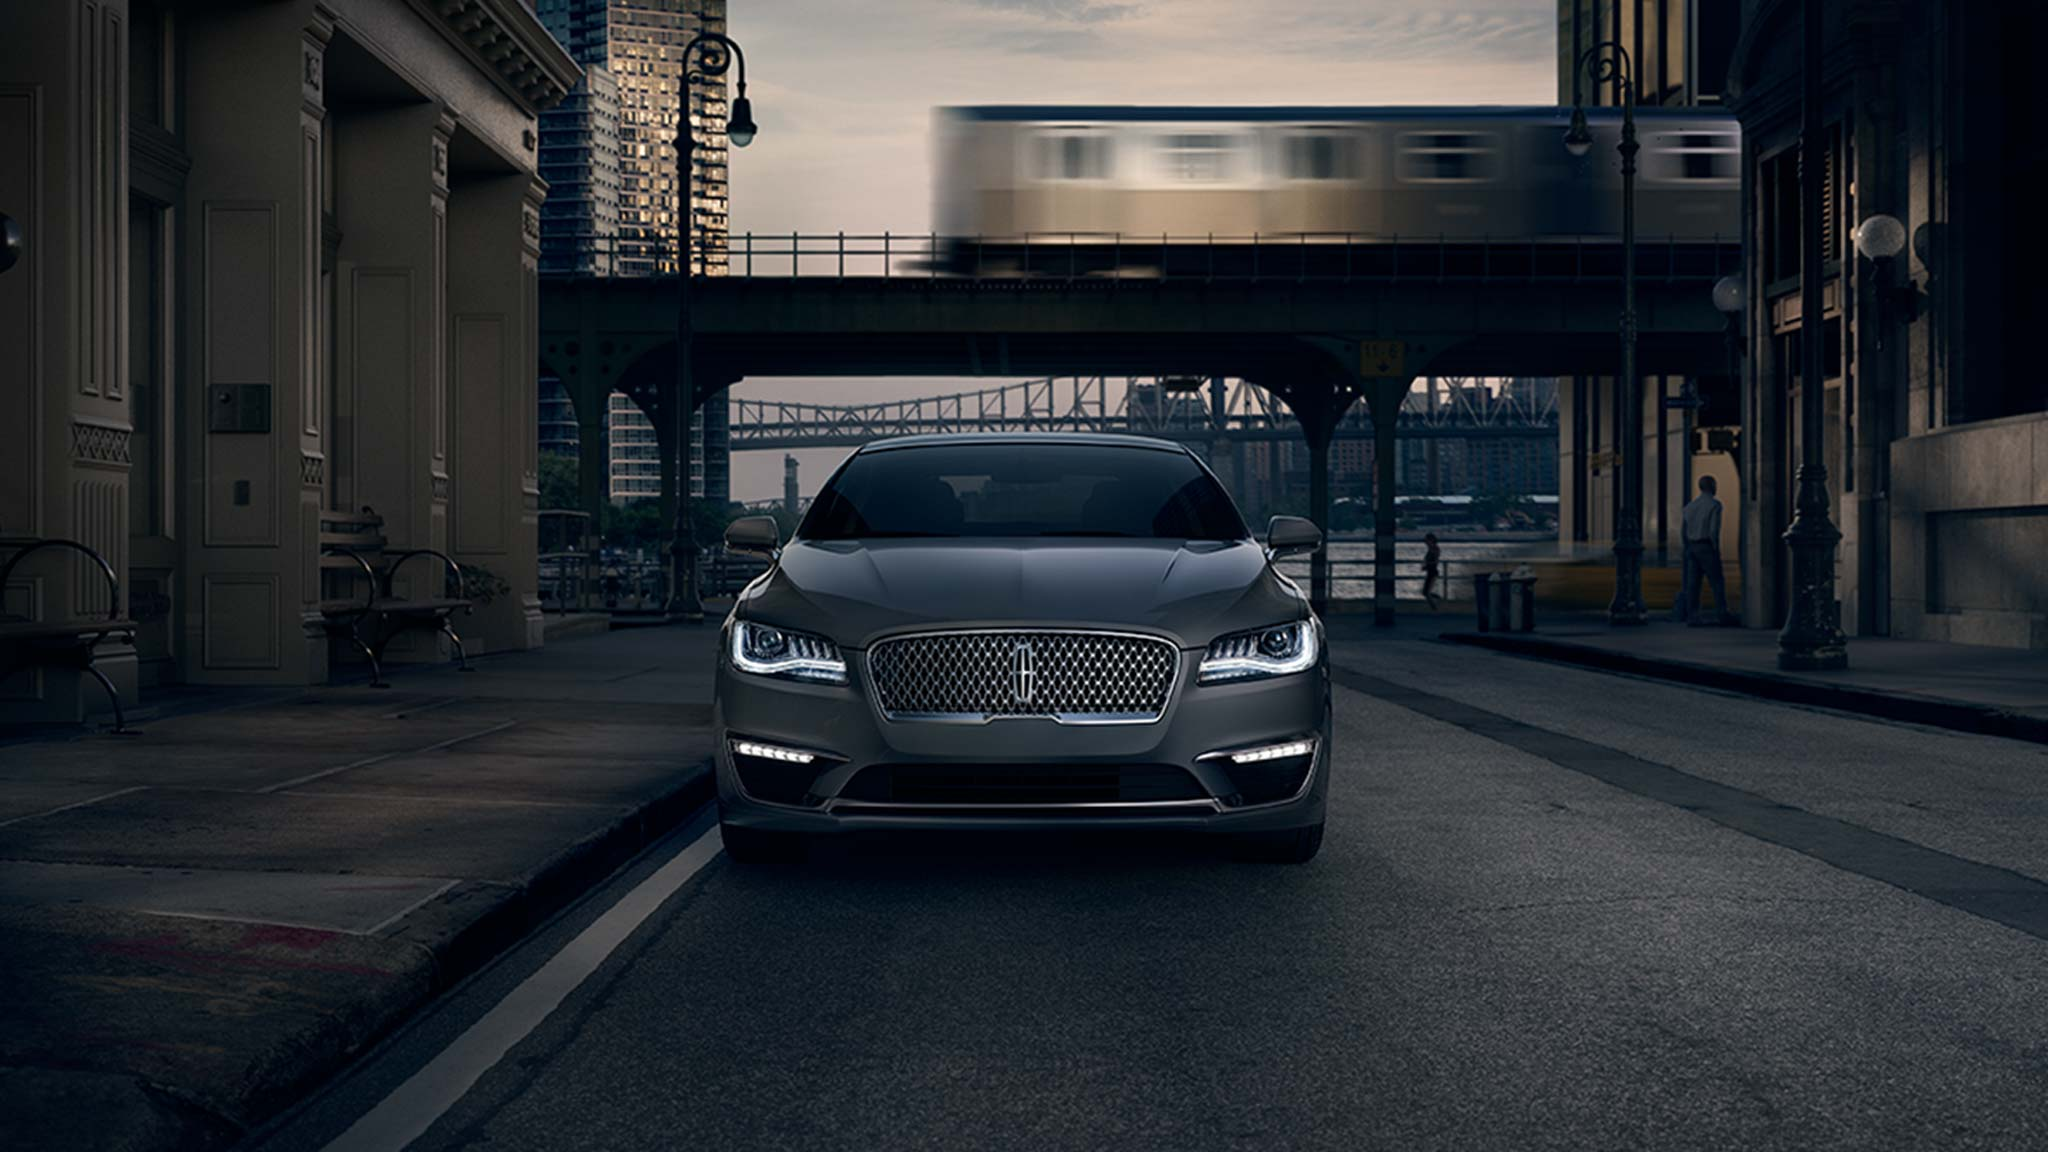 2017 Lincoln MKZ Front Exterior Silver